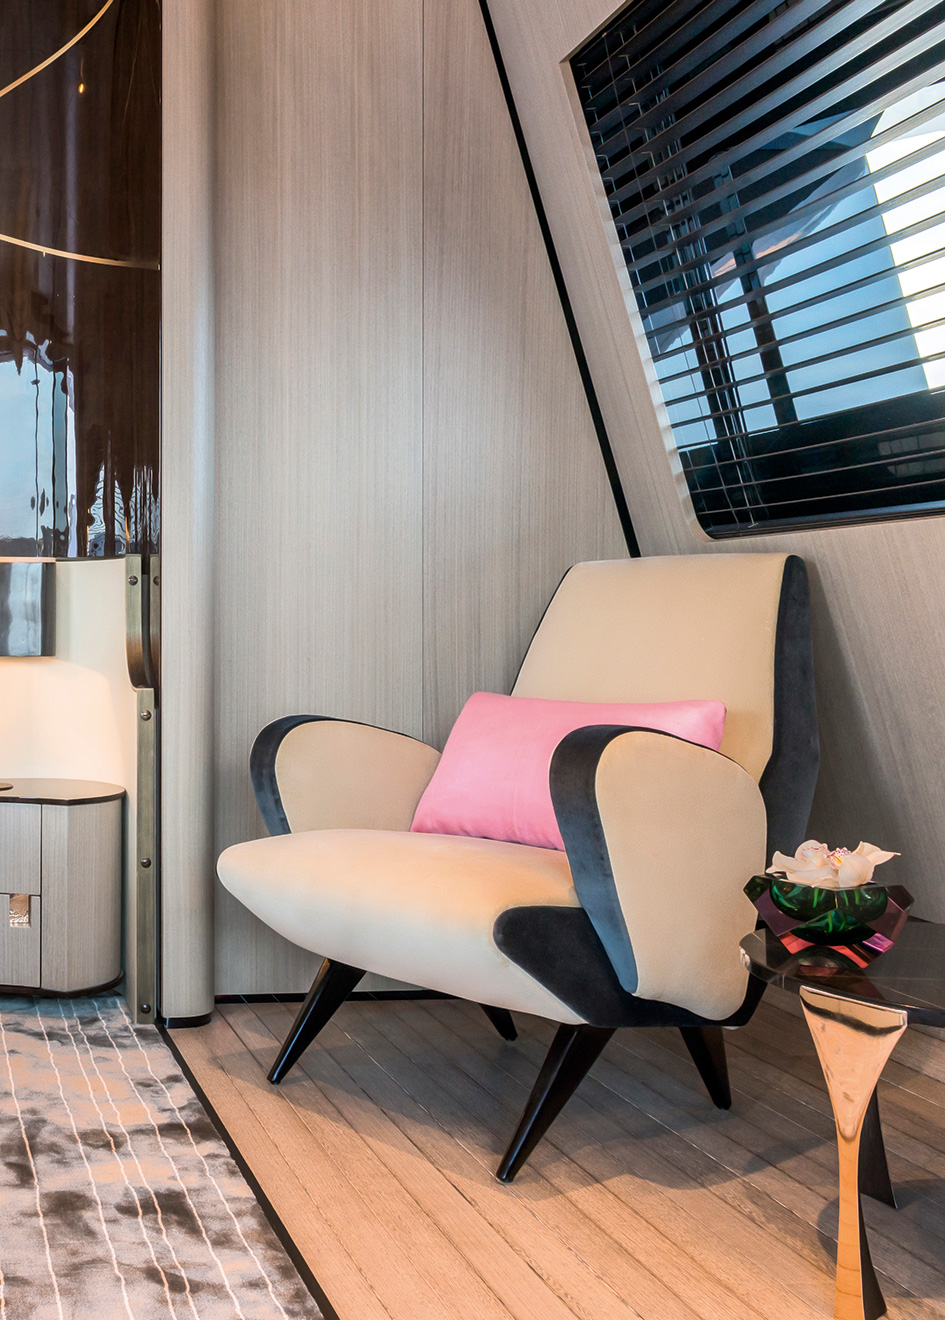 master-suite-detail-on-the-rossinavi-superyacht-aurora-credit-Paolo-Petrignani